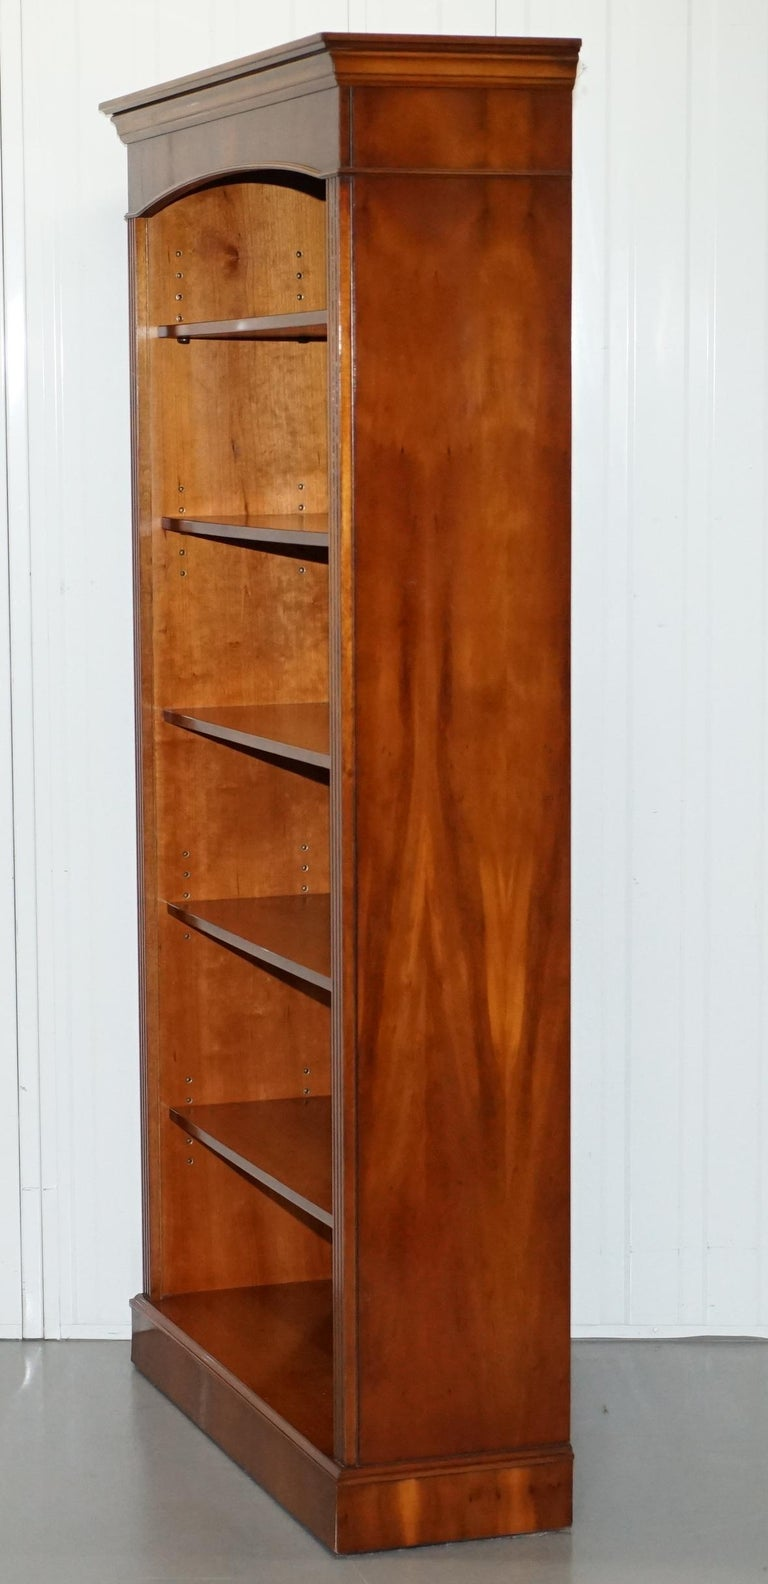 Lovely Burr Yew Wood Library Legal Bookcase with Height Adjustable Shelves For Sale 4